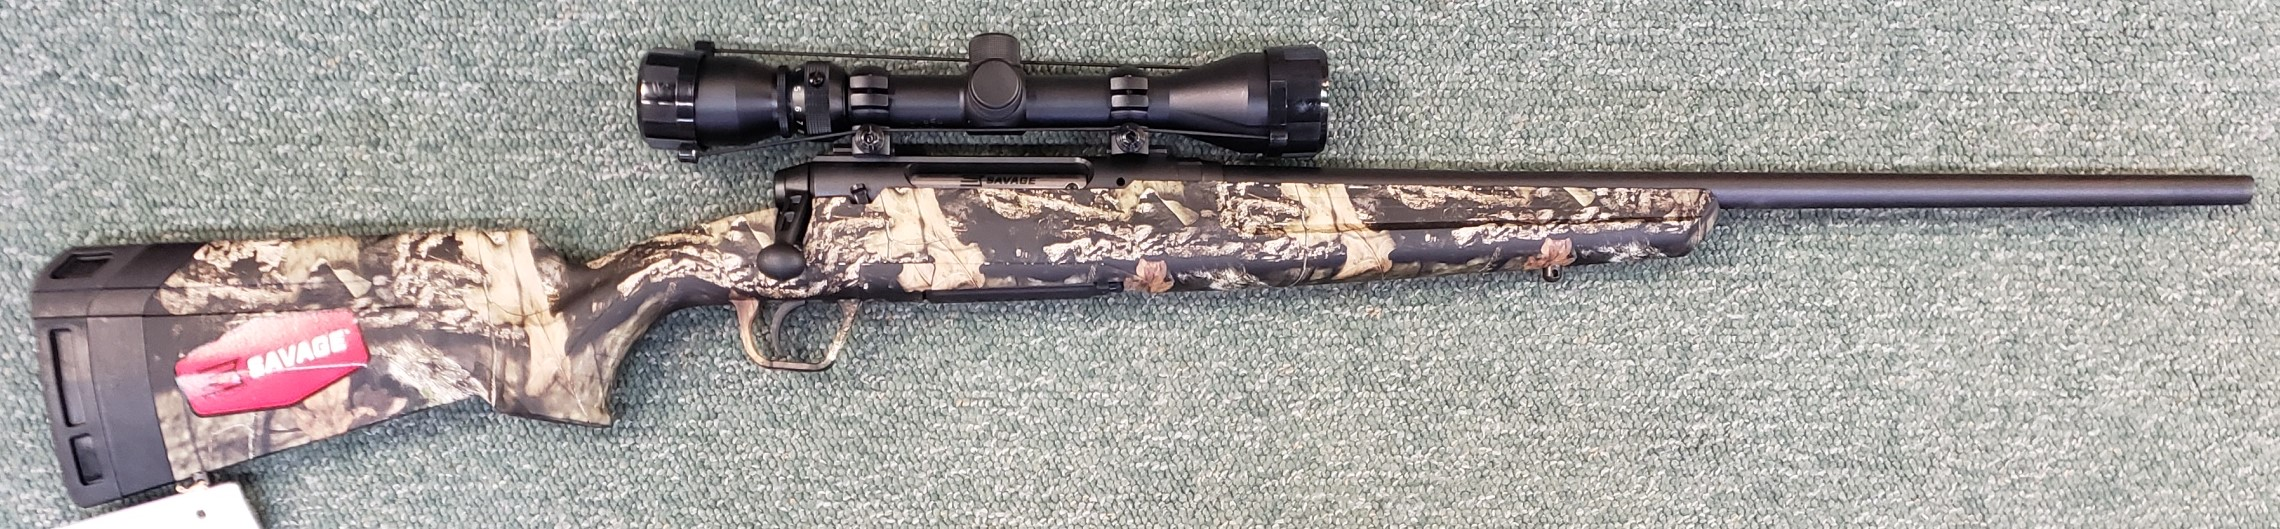 Savage Axis XP Camo 6.5 Creedmoor